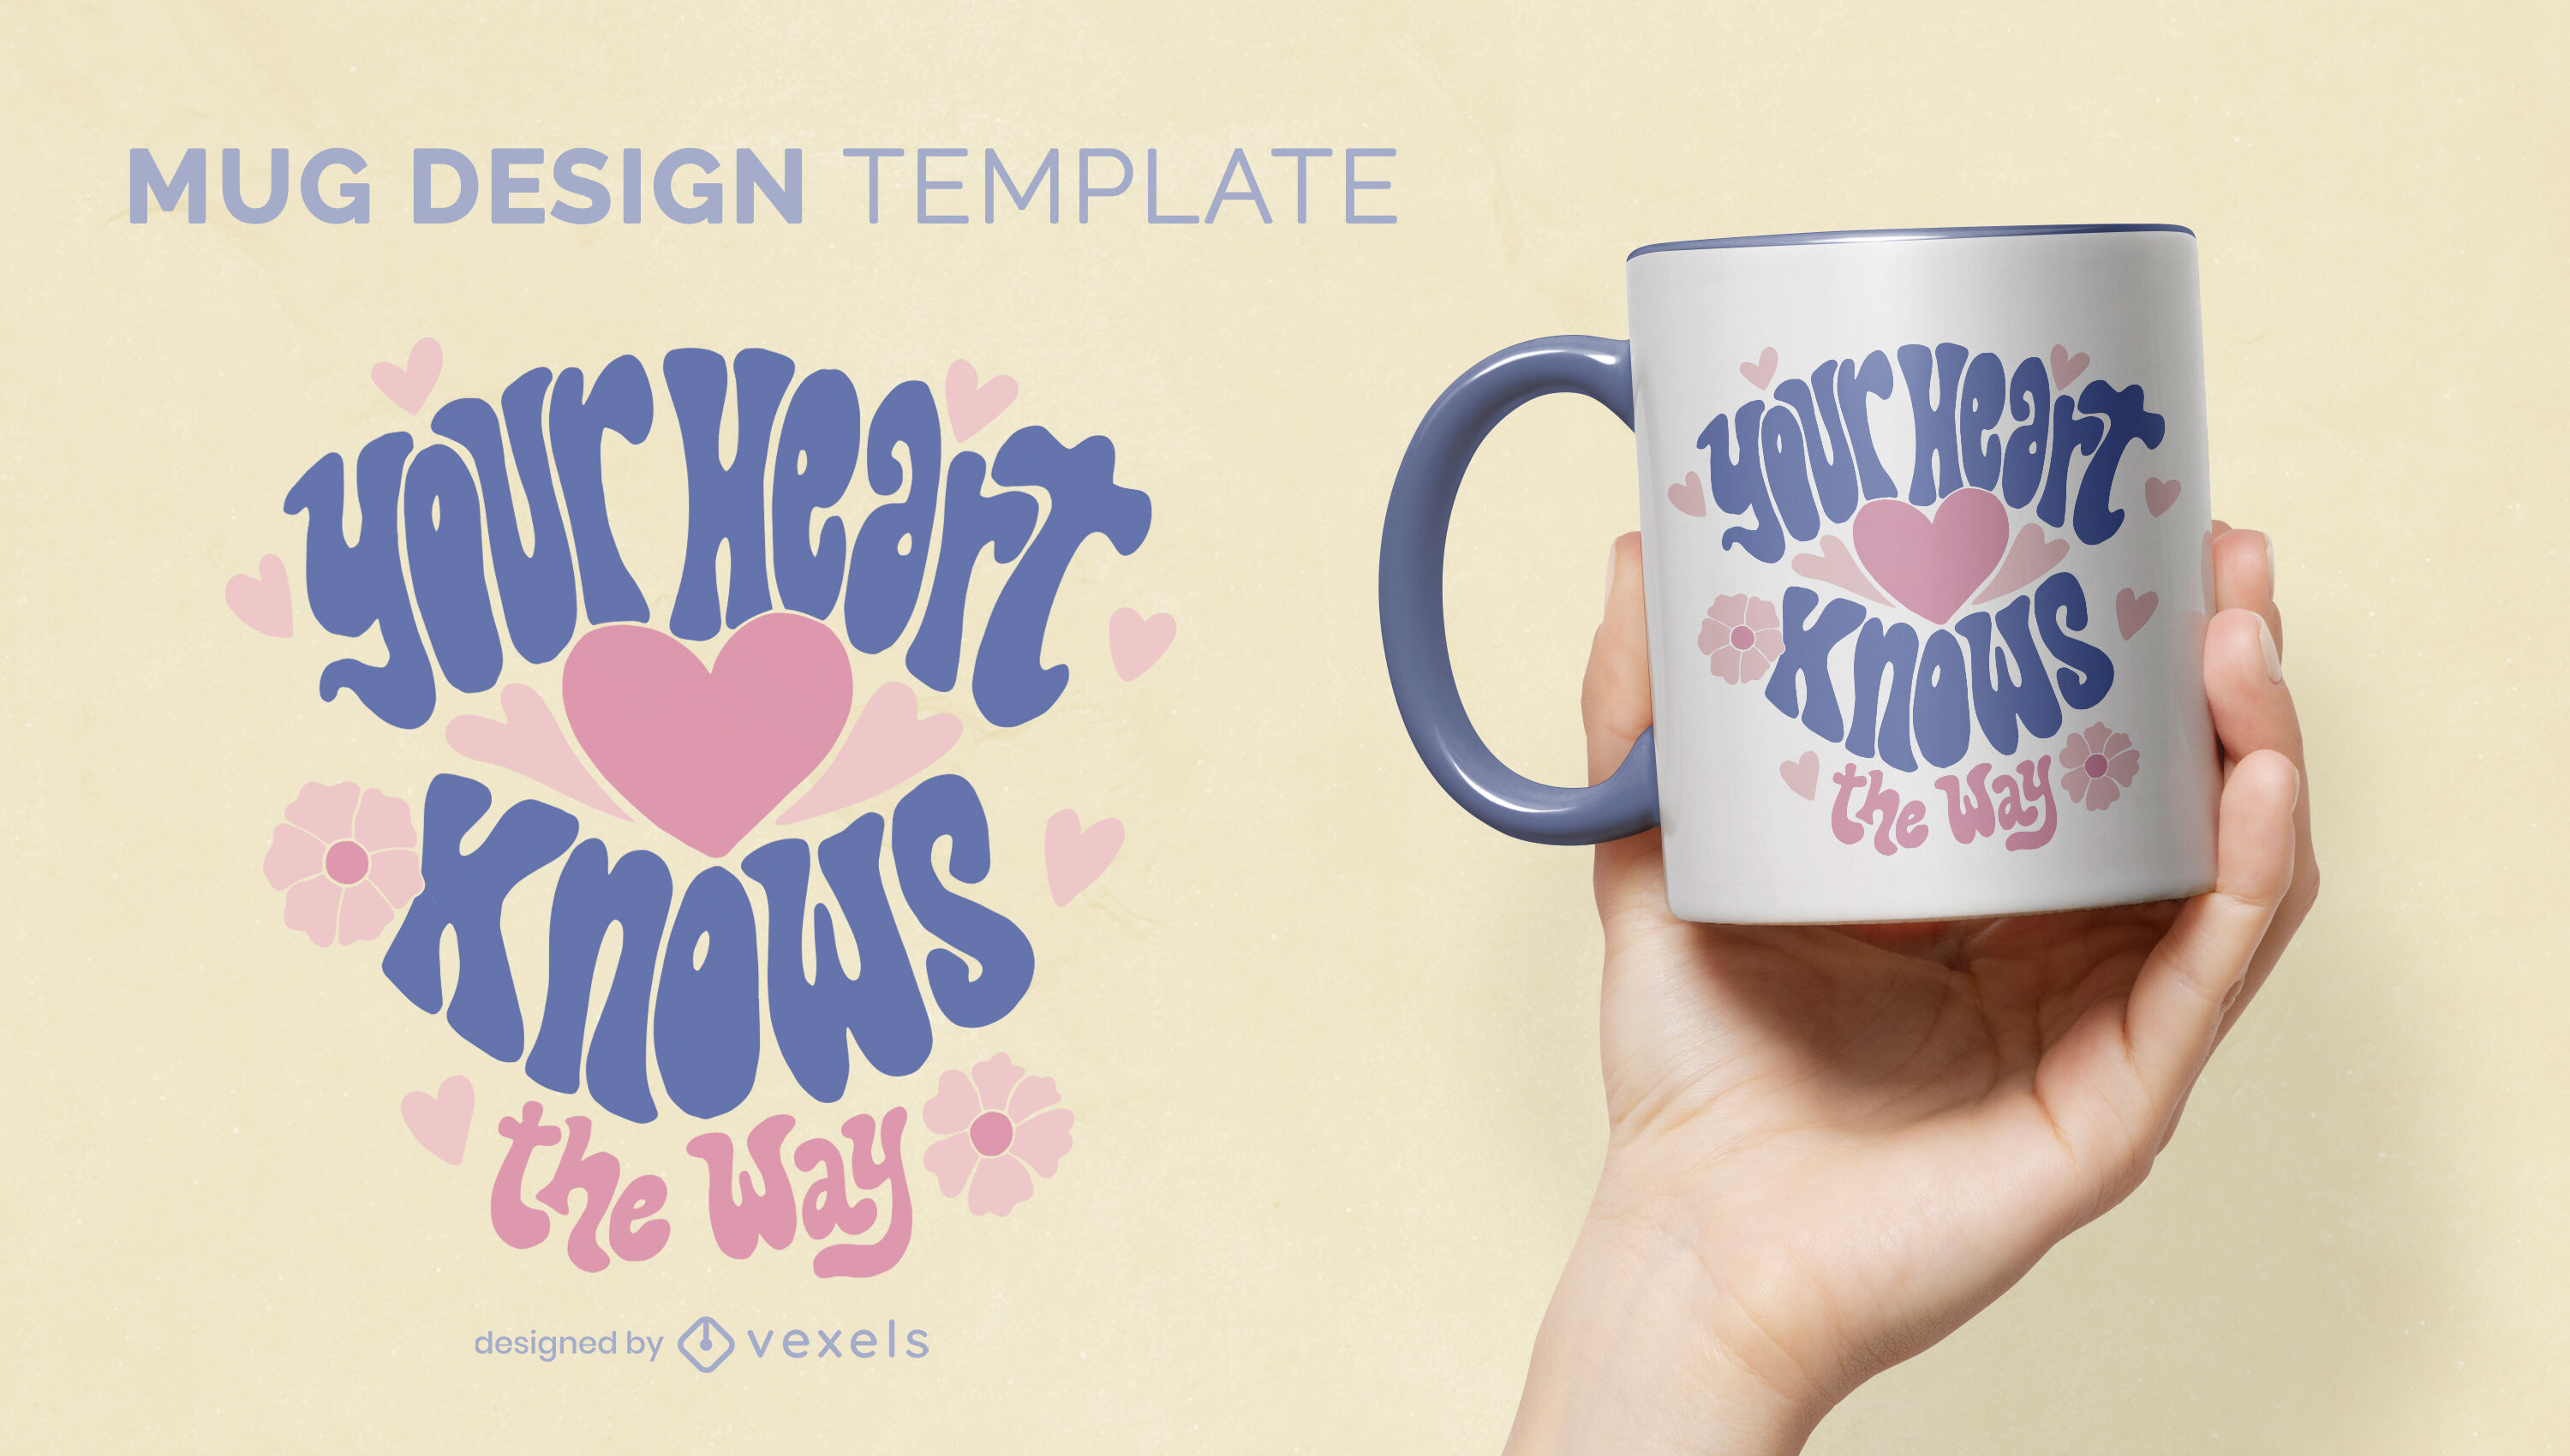 Your heart knows the way lettering mug design template